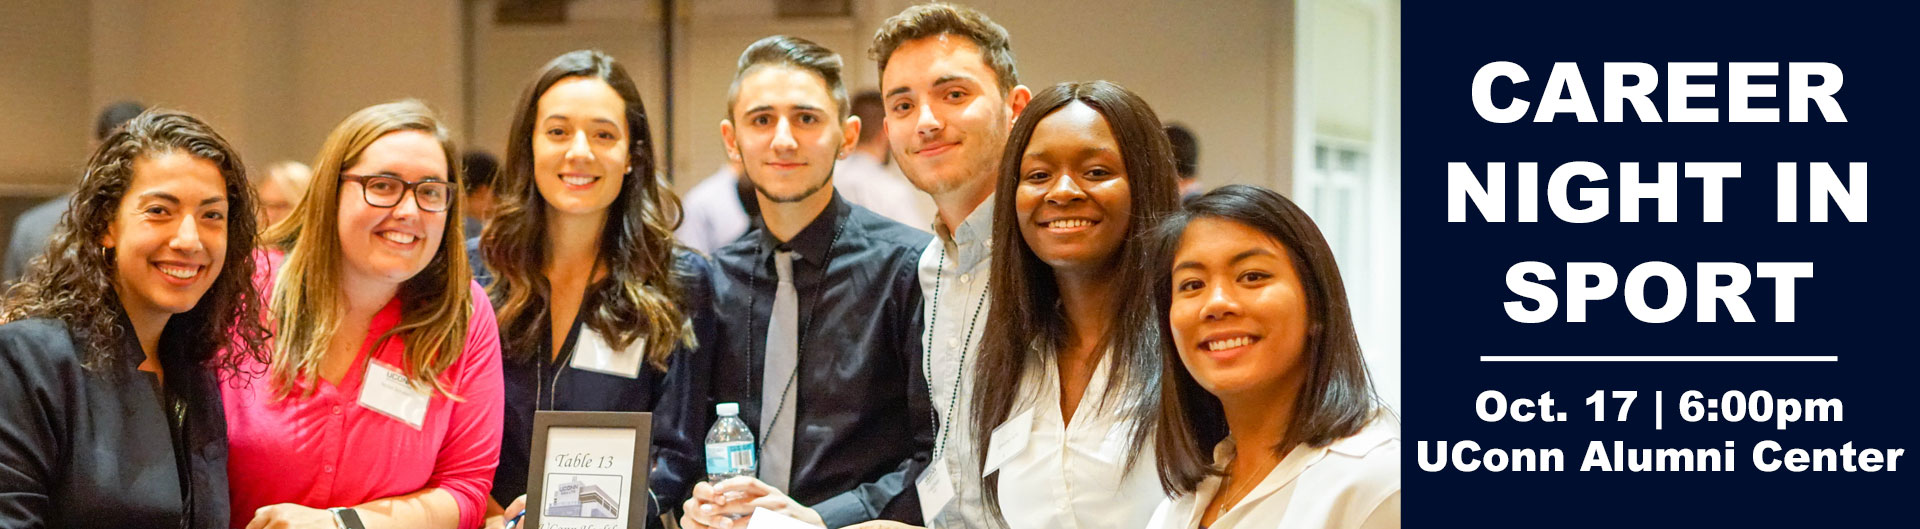 Students gathered together during OCT 2017 Career Night in Sport event.